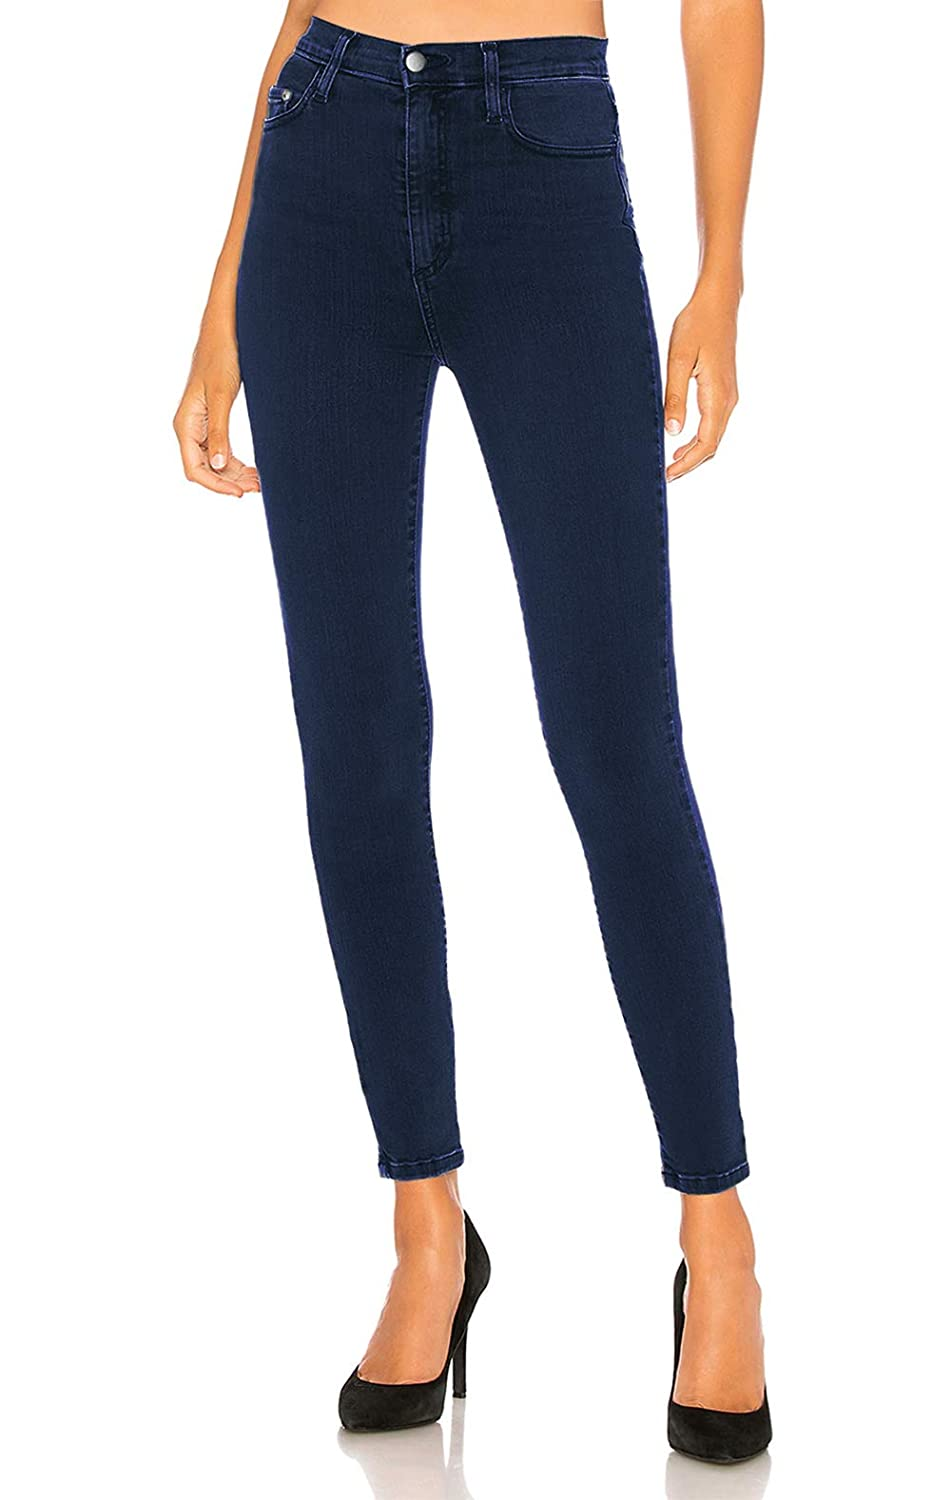 MONYRAY Women High-Waisted Stretch Denim Pants Washed Skinny Jeans